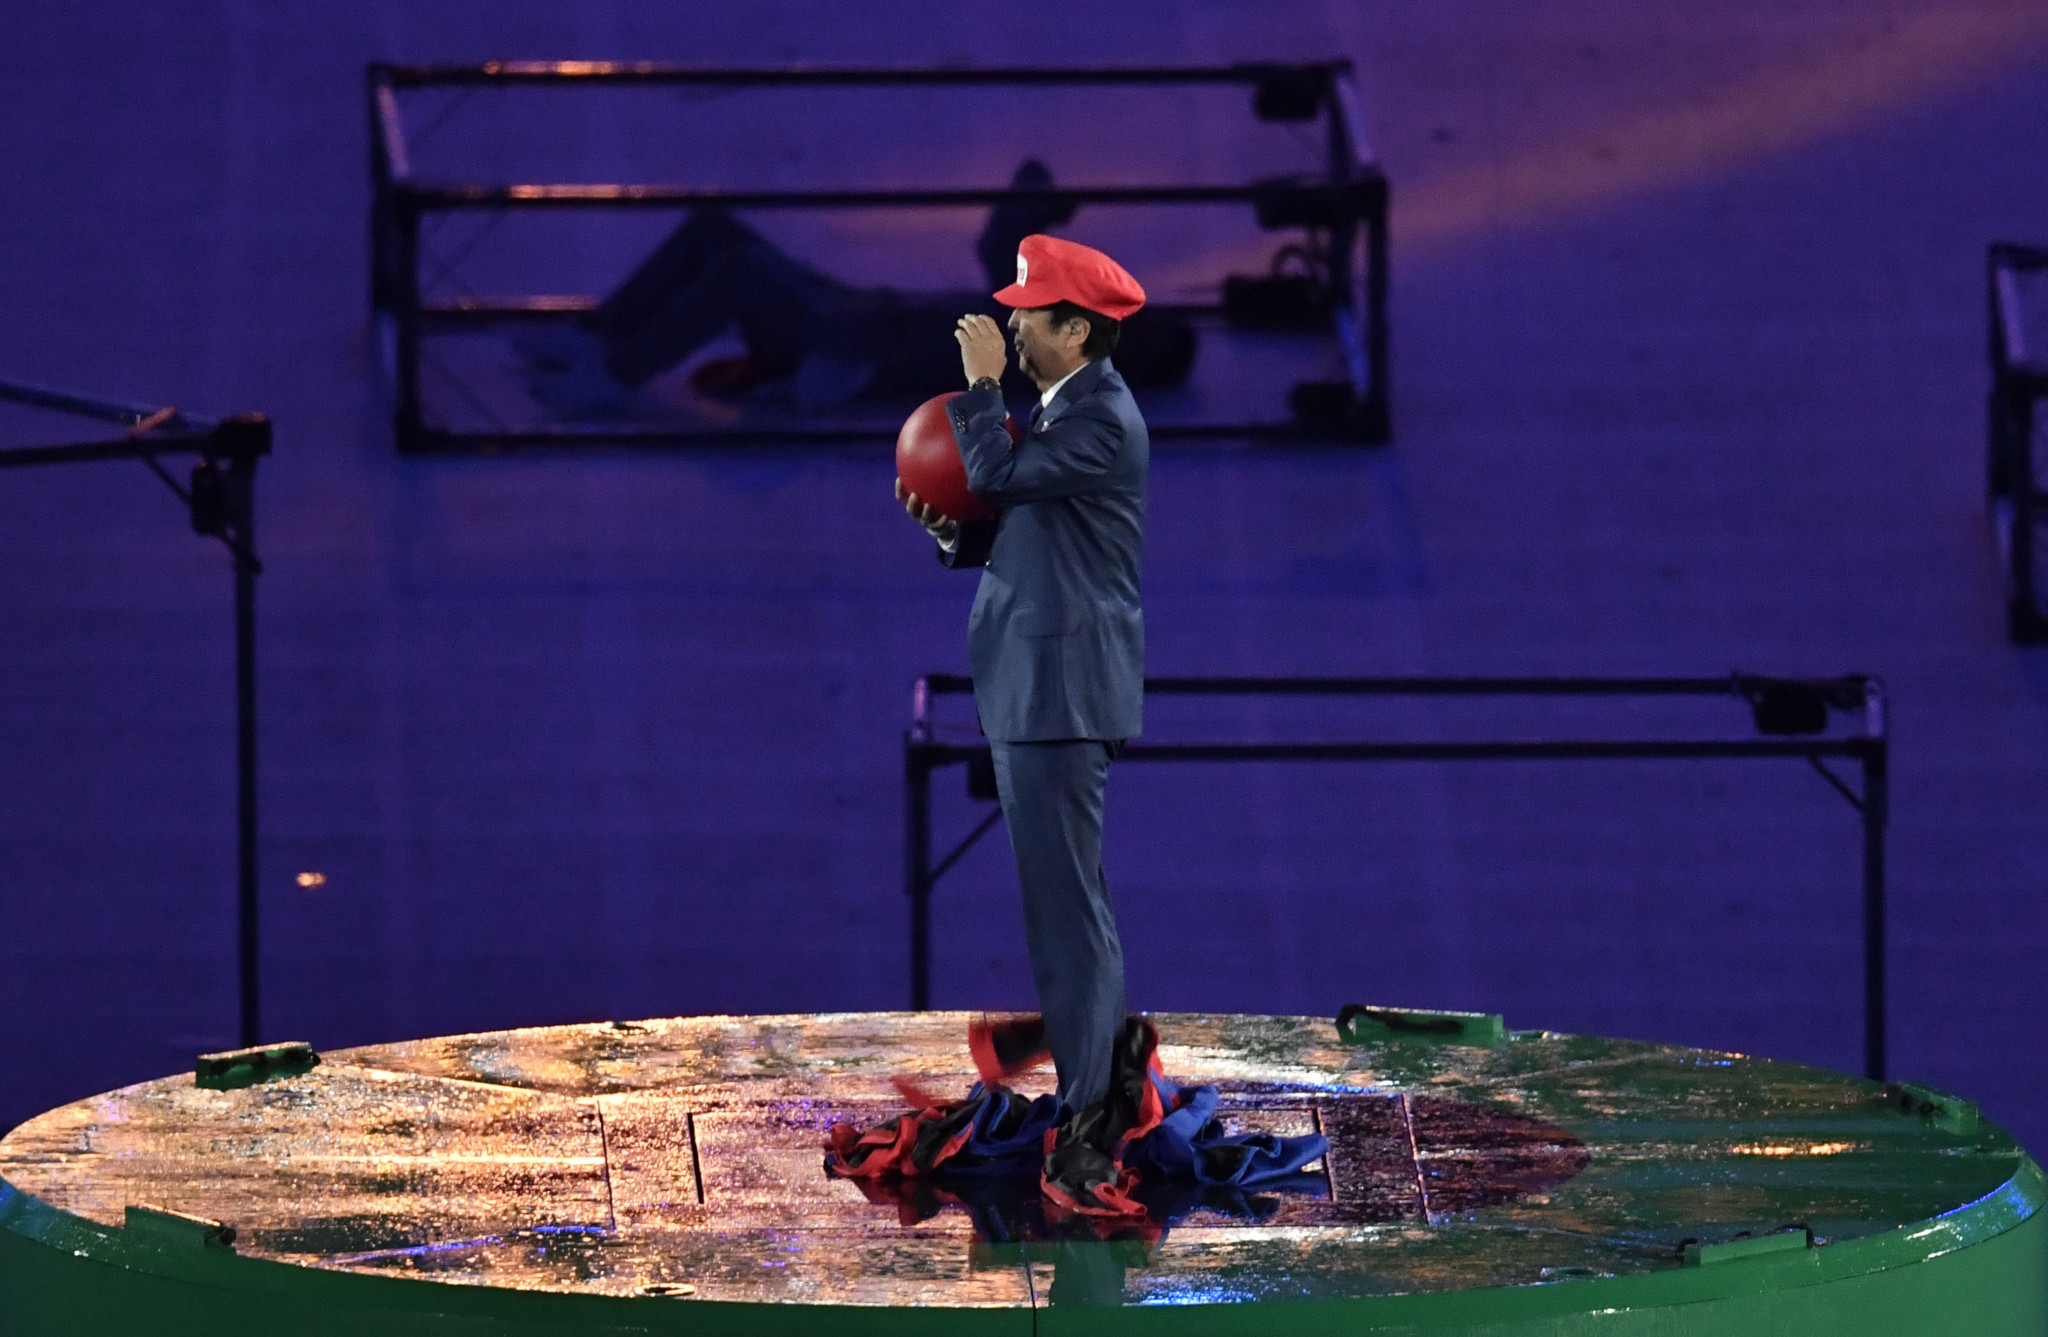 Japanese Prime Minister Shinzō Abe dressed up as Mario at Rio 2016 ©Getty Images